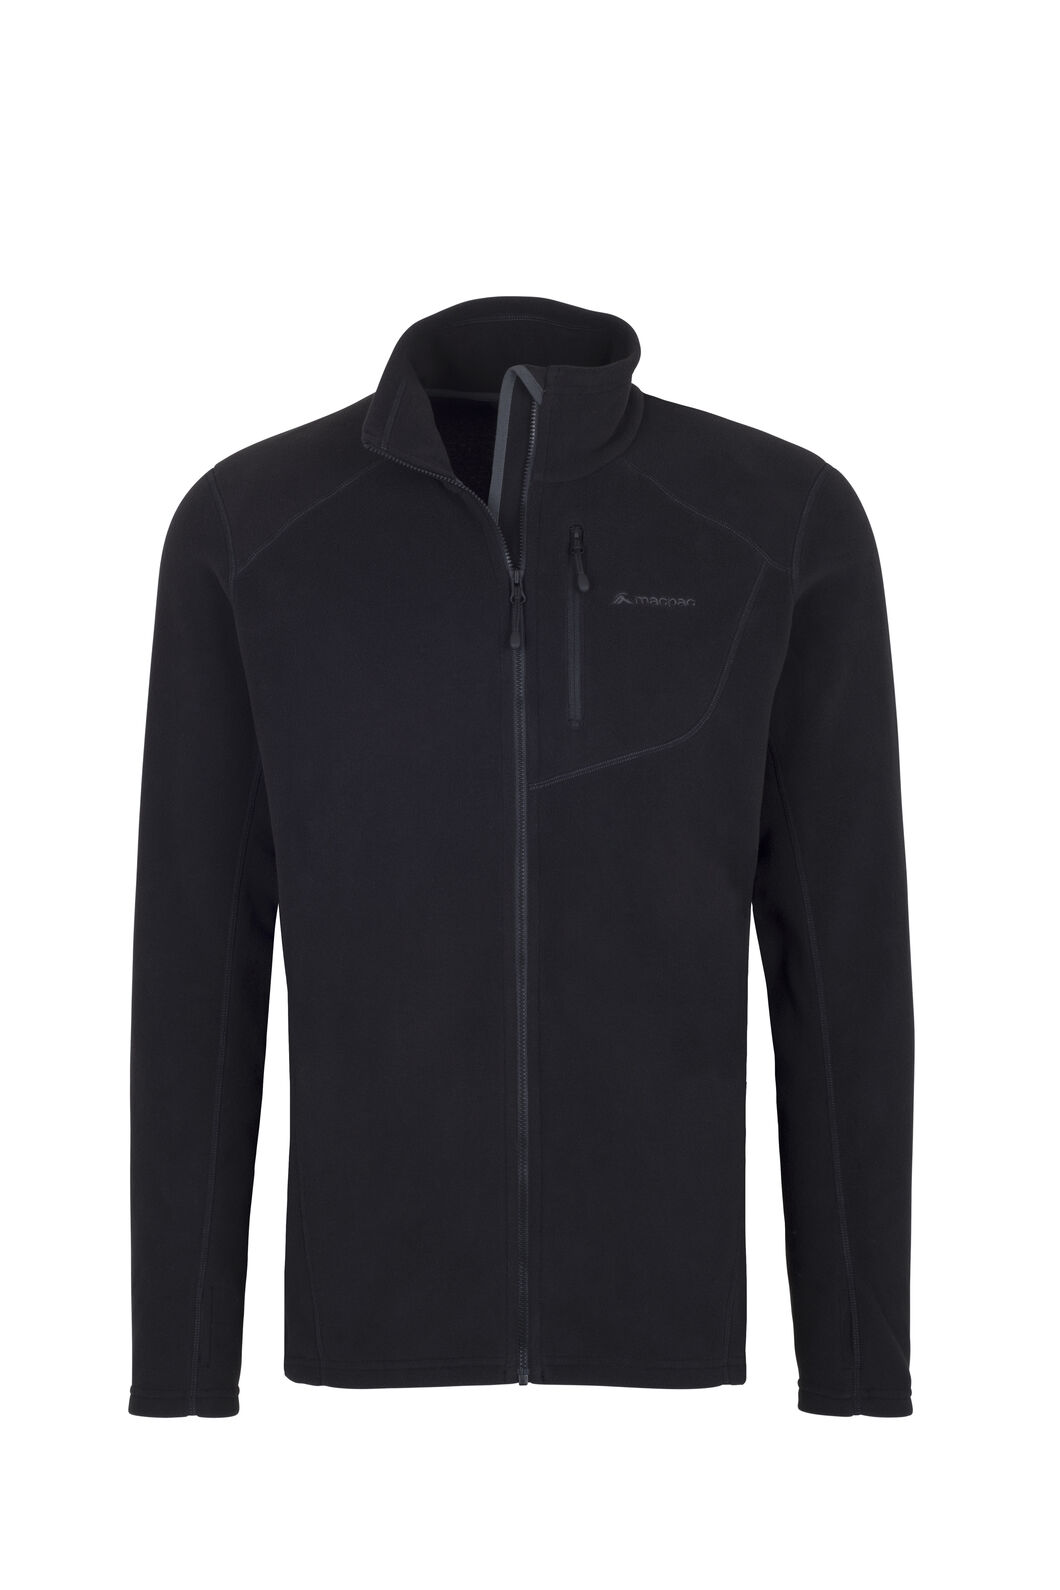 Macpac Kea Polartec® Micro Fleece® Jacket — Men's, Black, hi-res